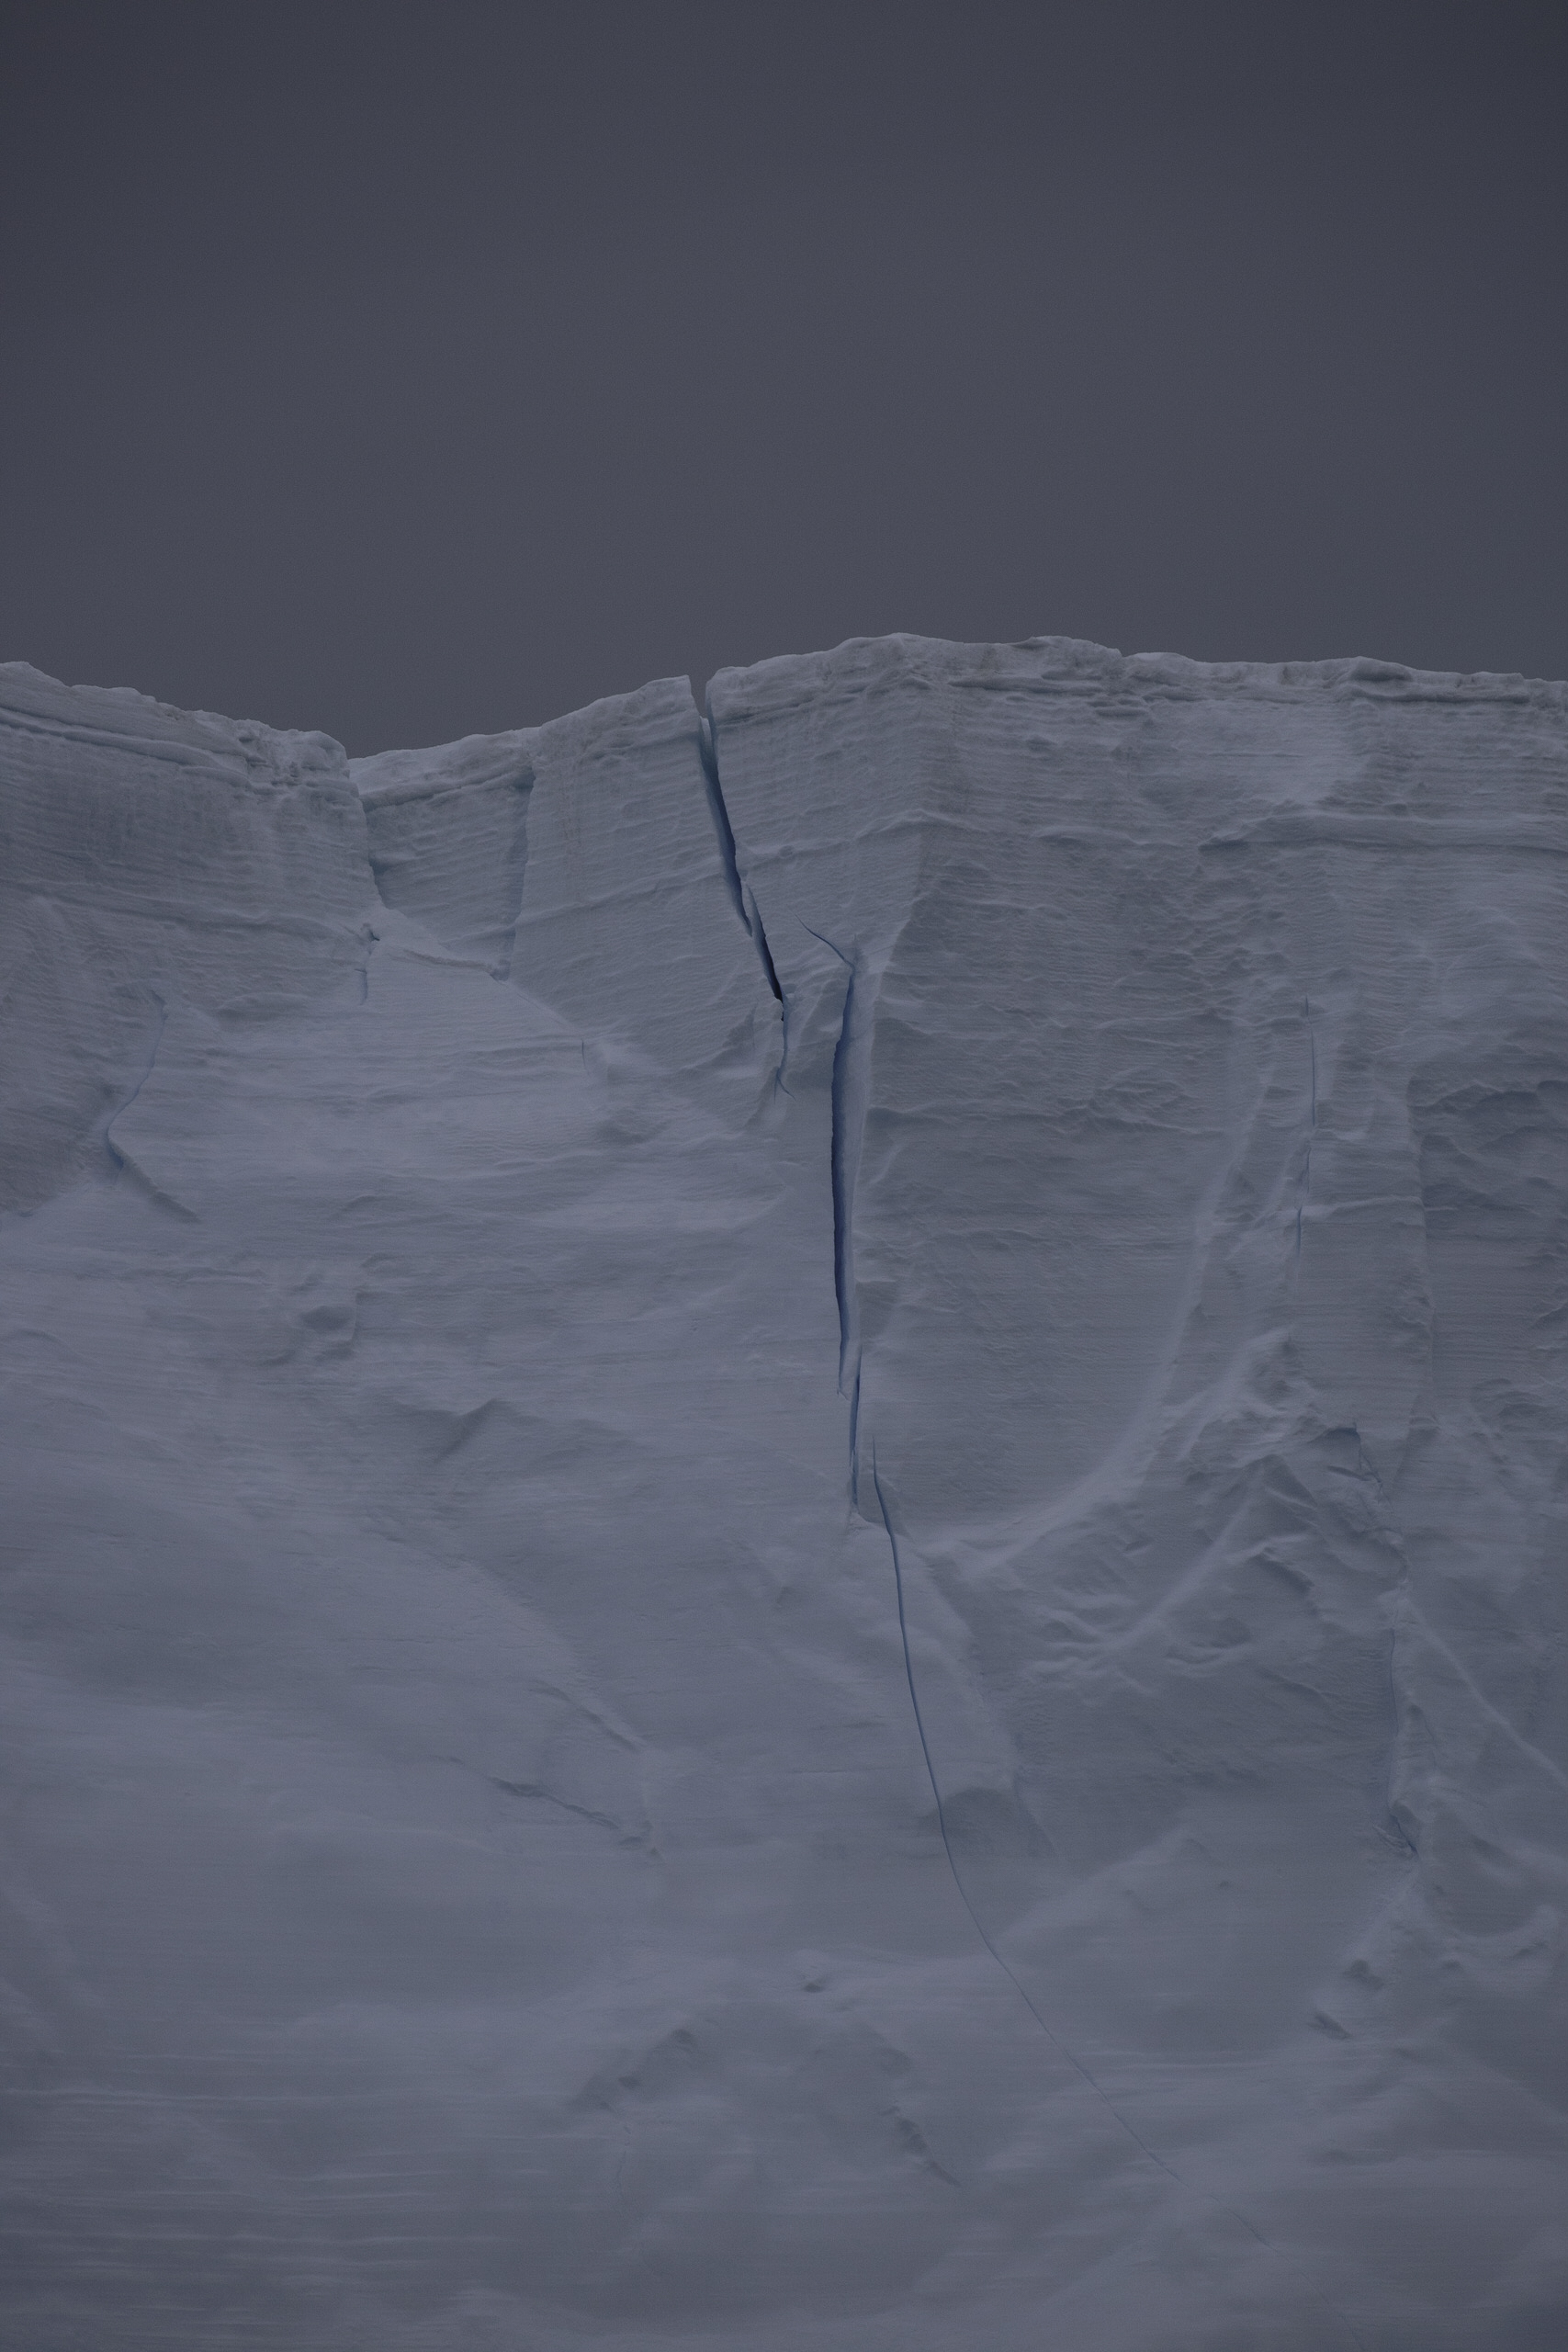 This crack is probably close to 30m long running down the side of a tabular iceberg.